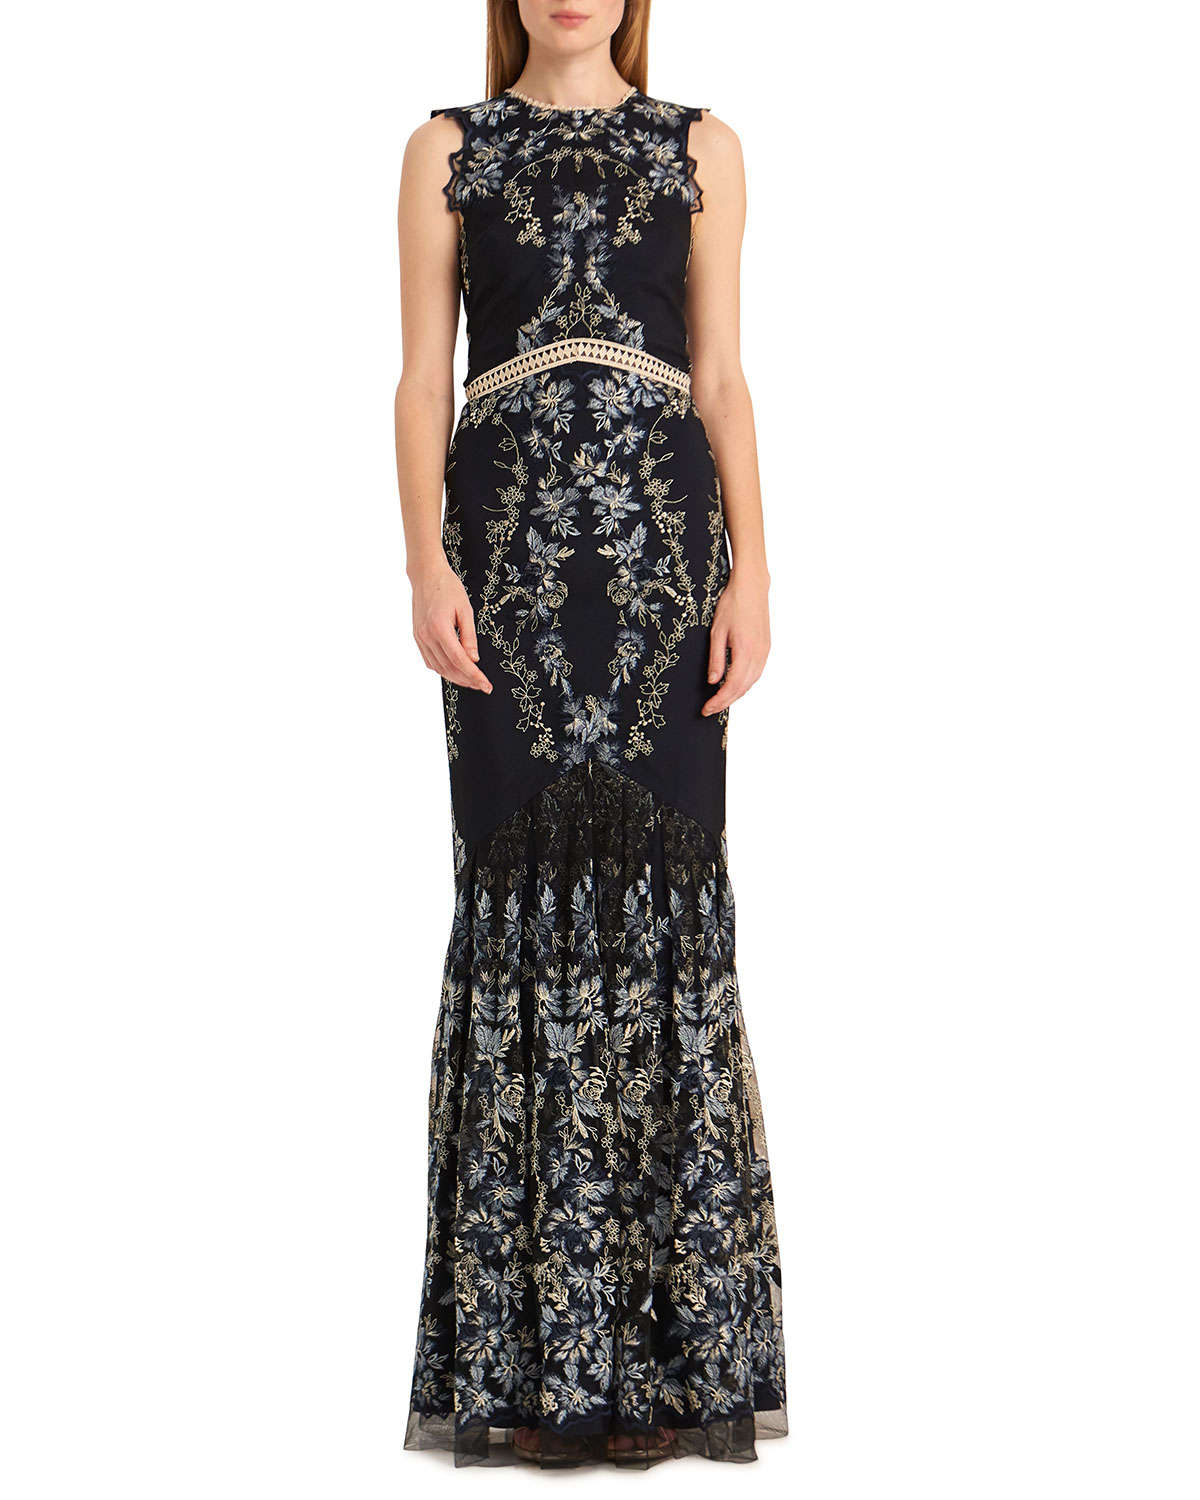 Open-Back Floral Embroidered Mesh Gown with Ruffled Bottom